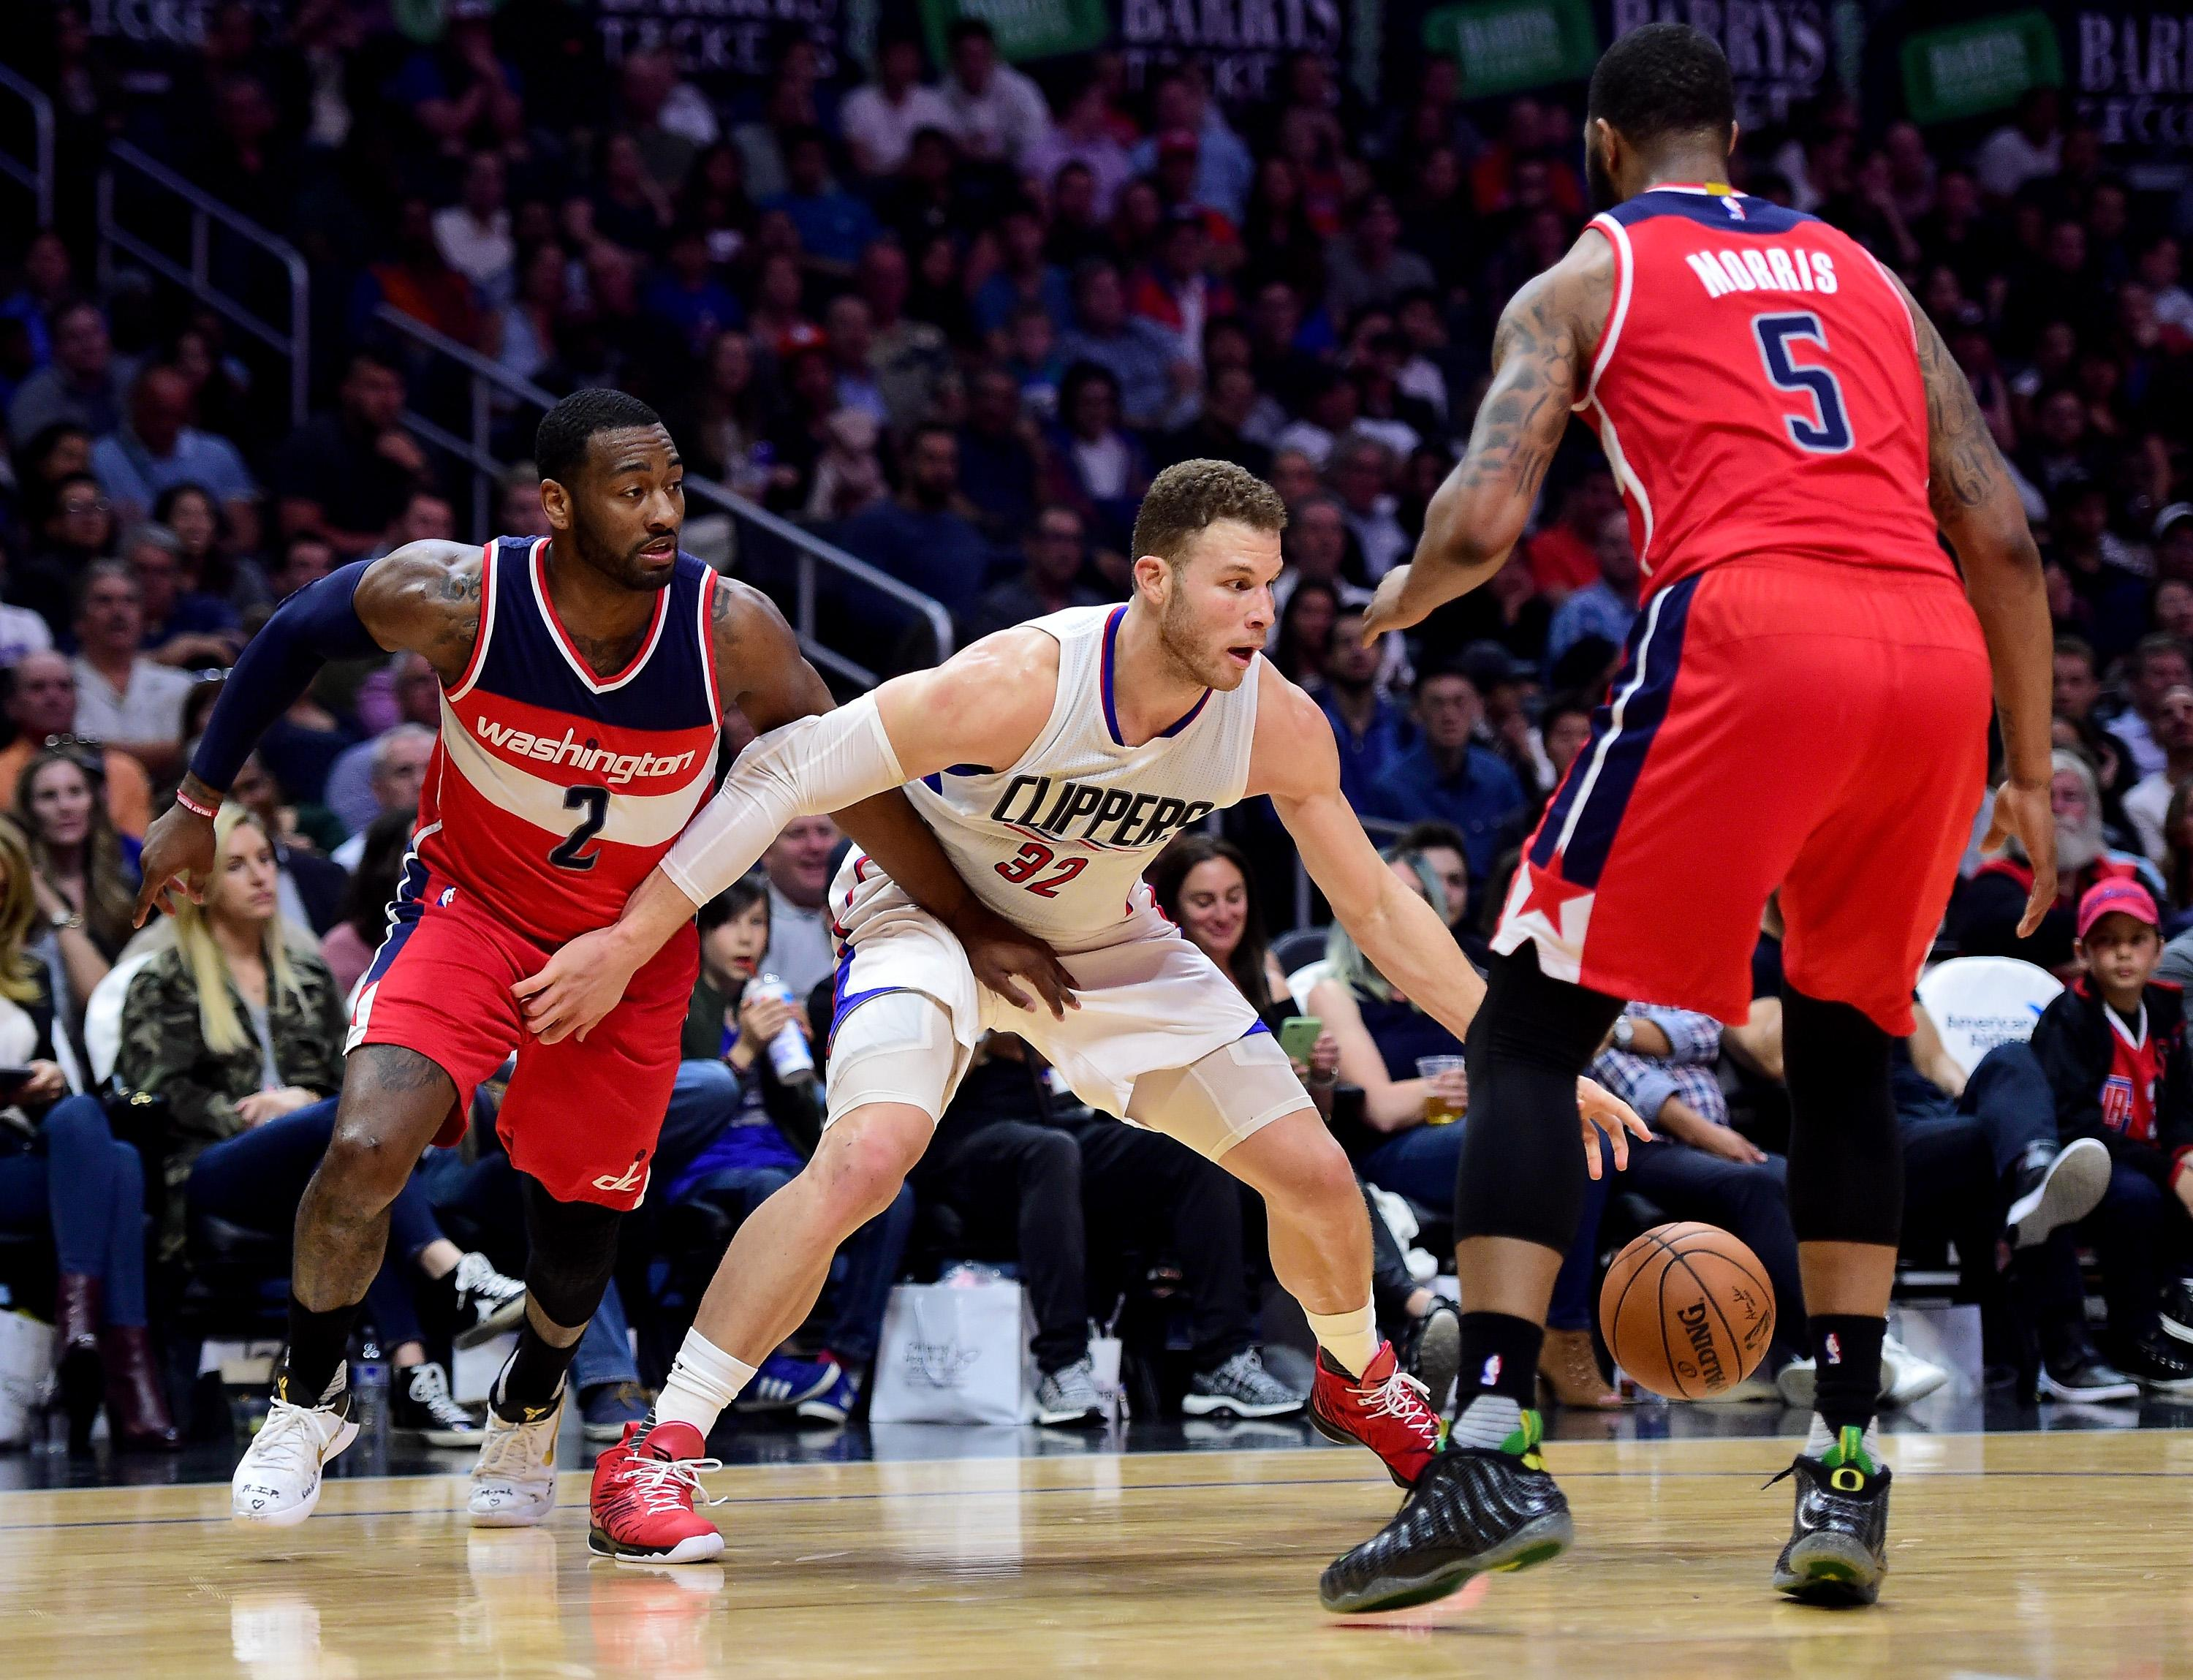 Blake Griffin #32 of the LA Clippers keeps his dribble from John Wall #2 and Markieff Morris #5 of the Washington Wizards